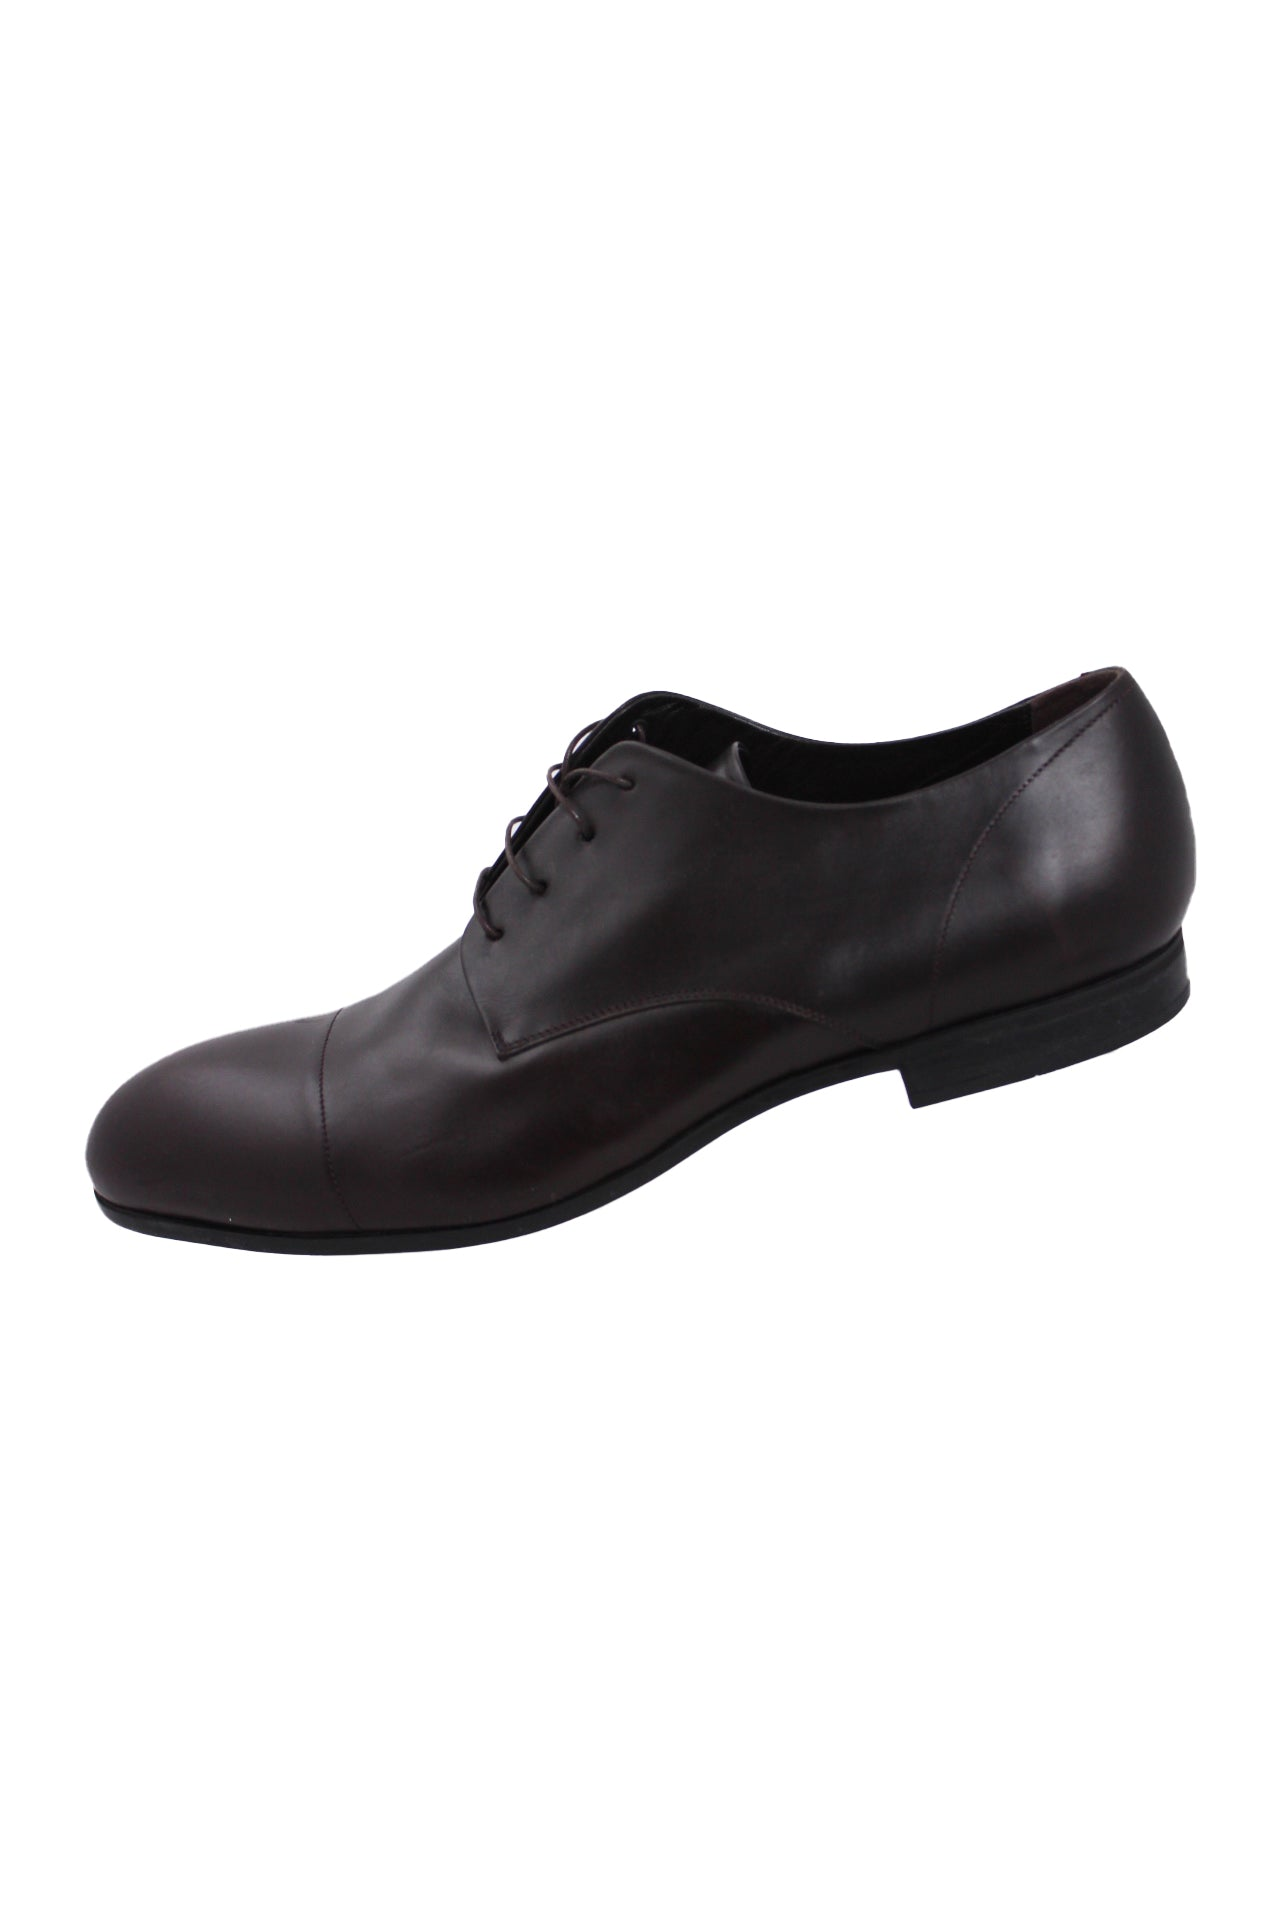 "calvin klein collection espresso leather derby shoes. features tonal stitching throughout with cord lace up closure. almond shaped toe, 0.5"" heel."